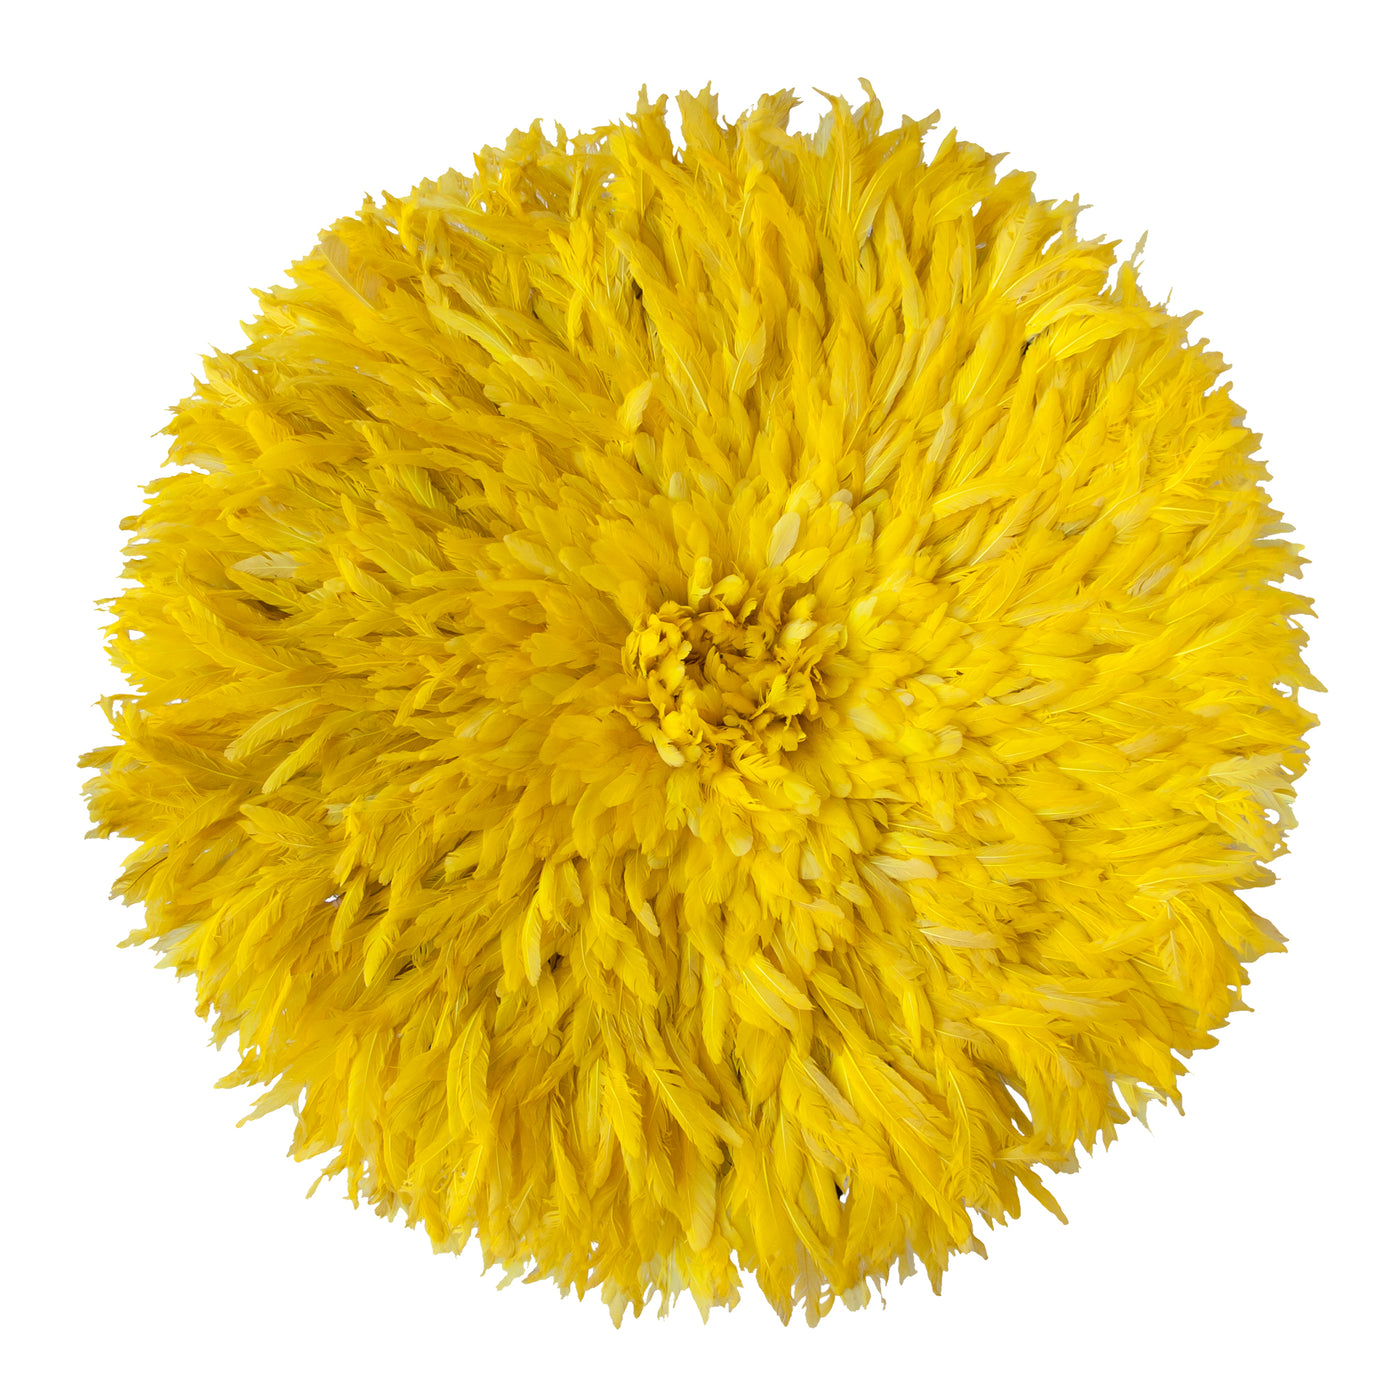 Bamileke Feather Headdress (yellow) | Juju Hat by Safari Fusion www.safarifusion.com.au